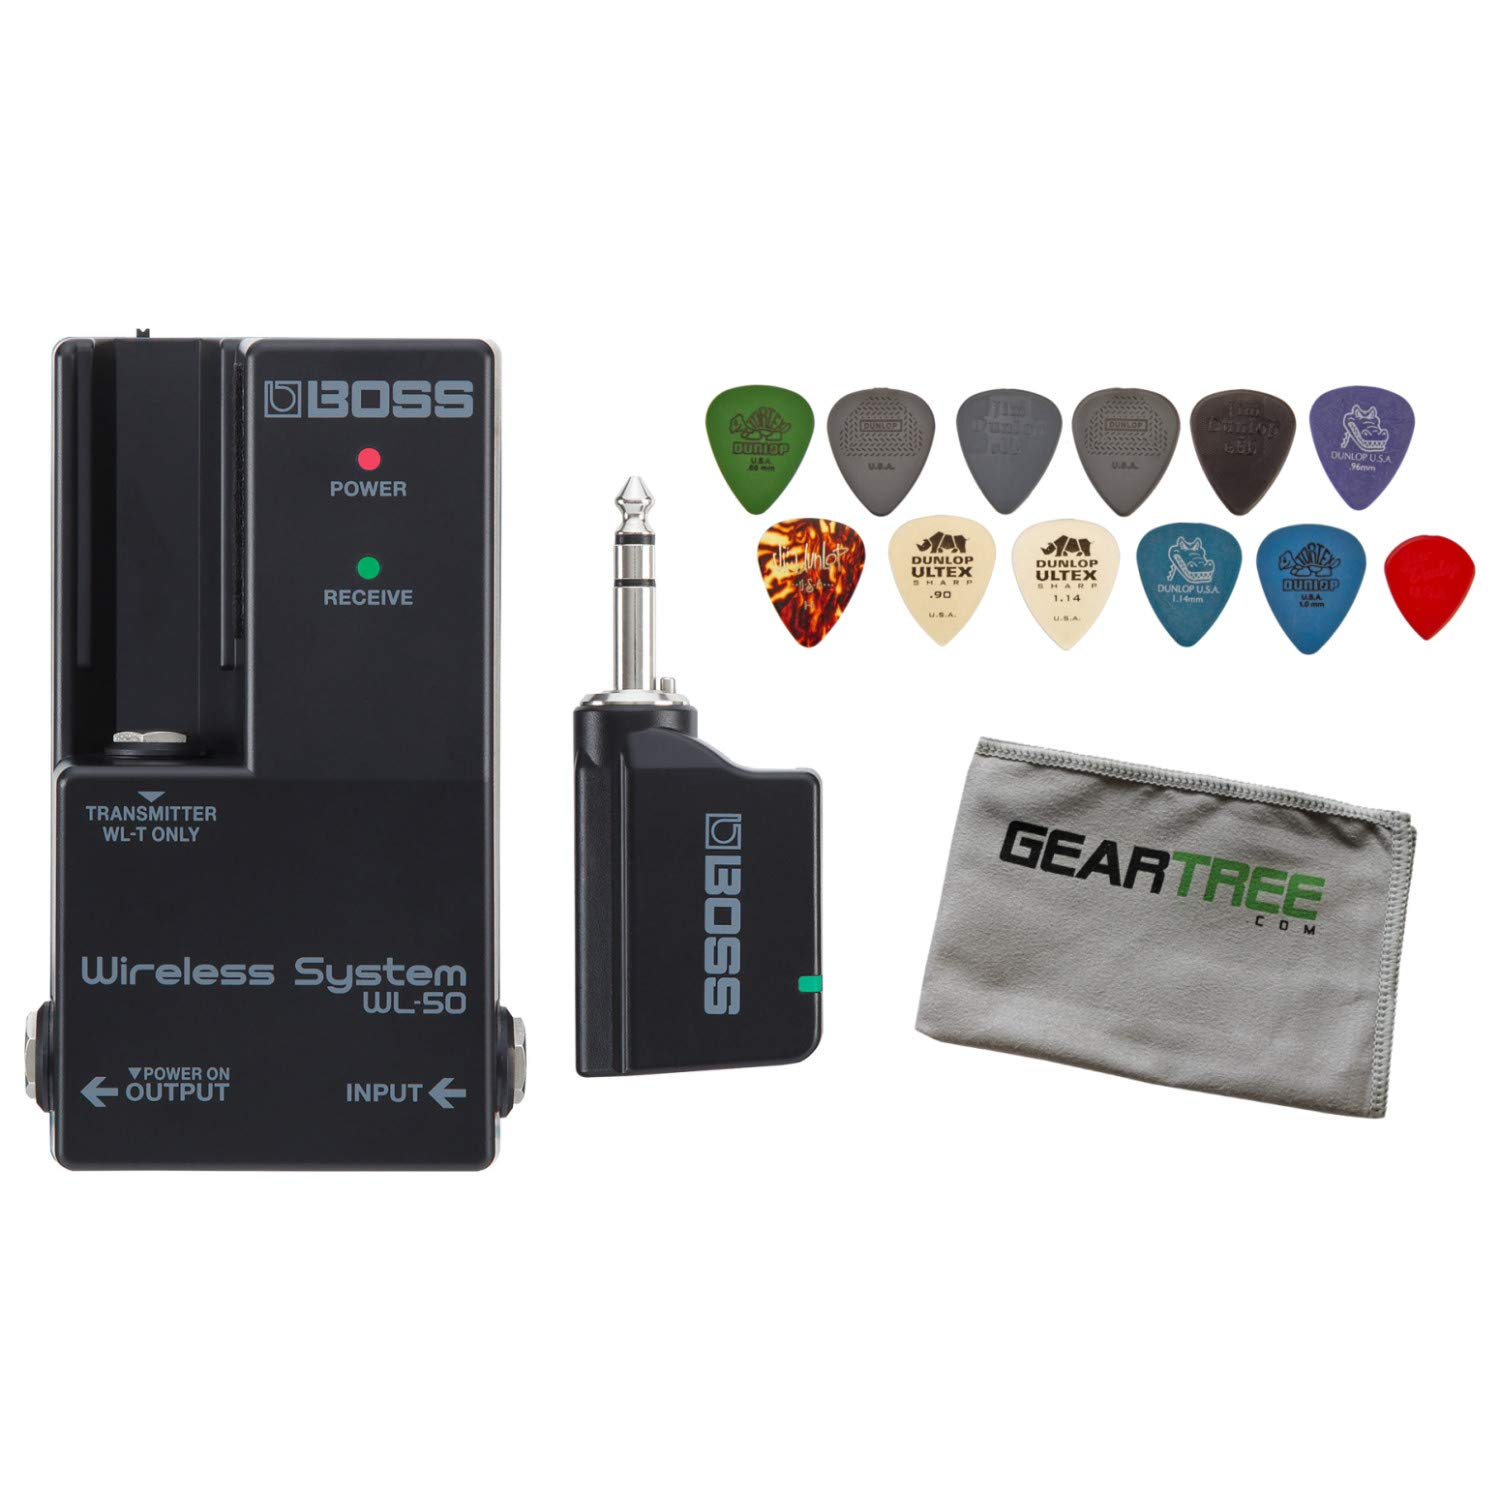 Boss WL-50 Guitar Pedalboard Wireless System Bundle w/Cloth and Pick Pack by BOSS